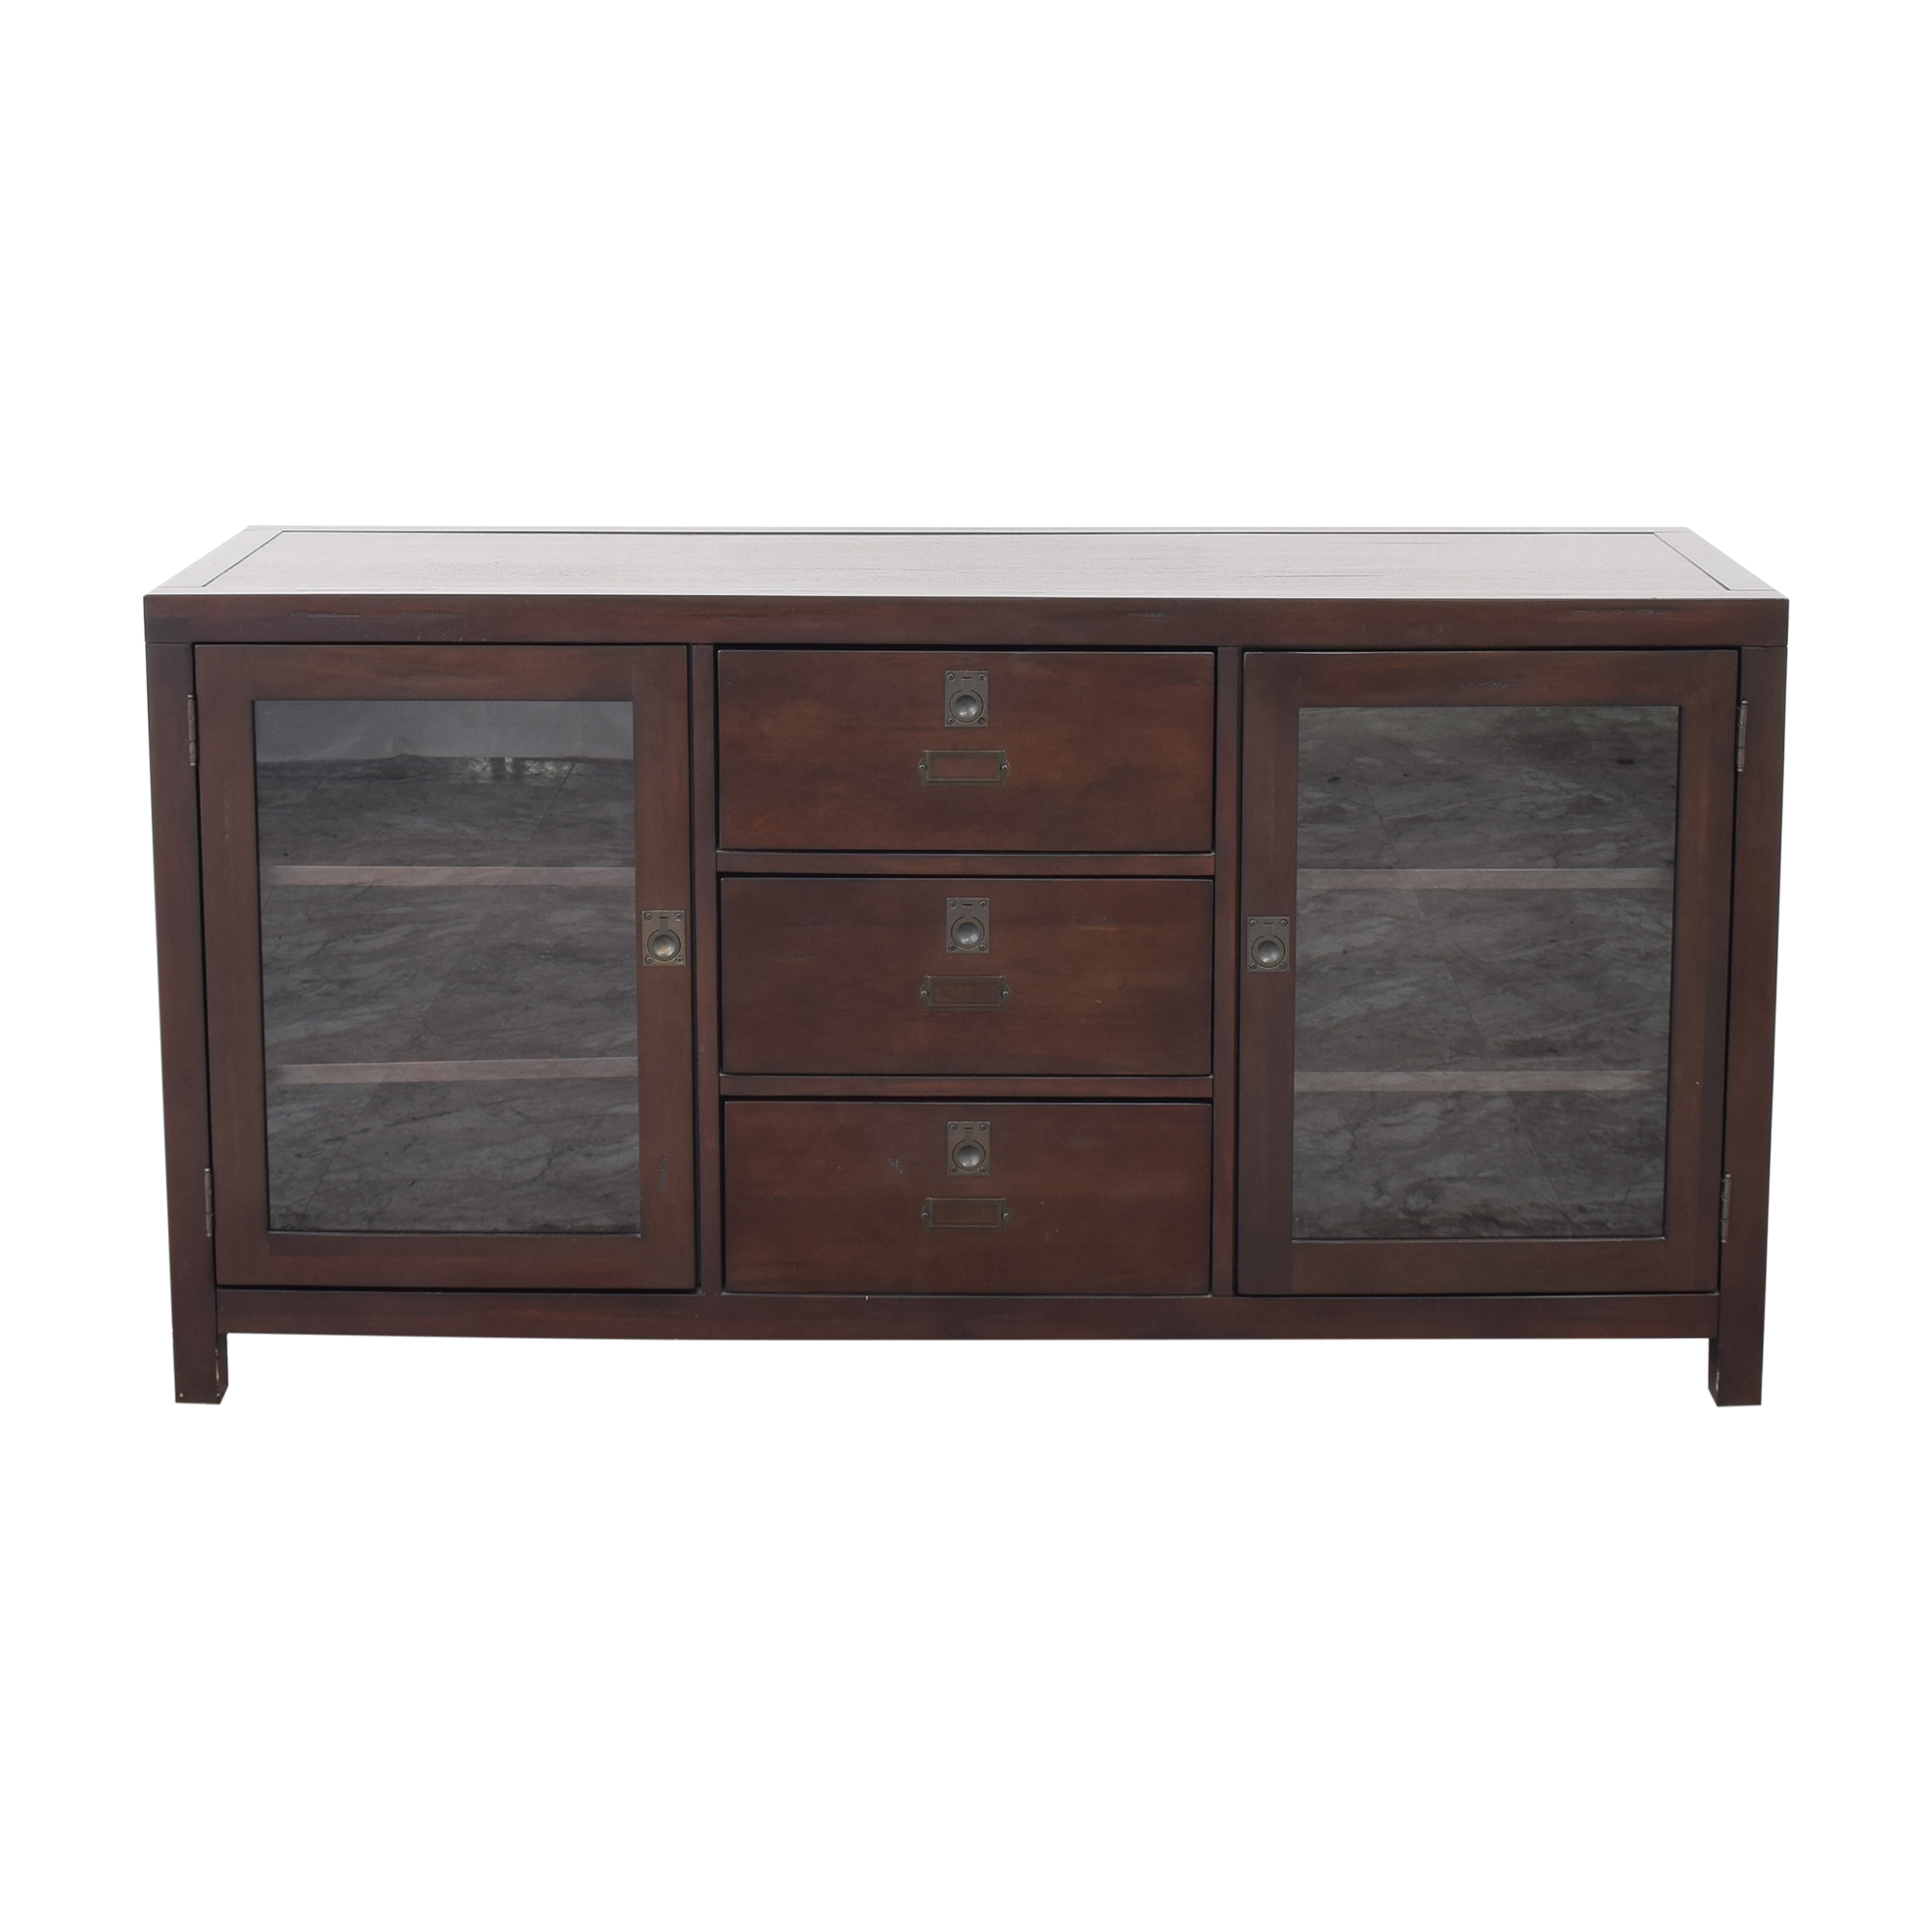 45 off pottery barn pottery barn rhys media console storage